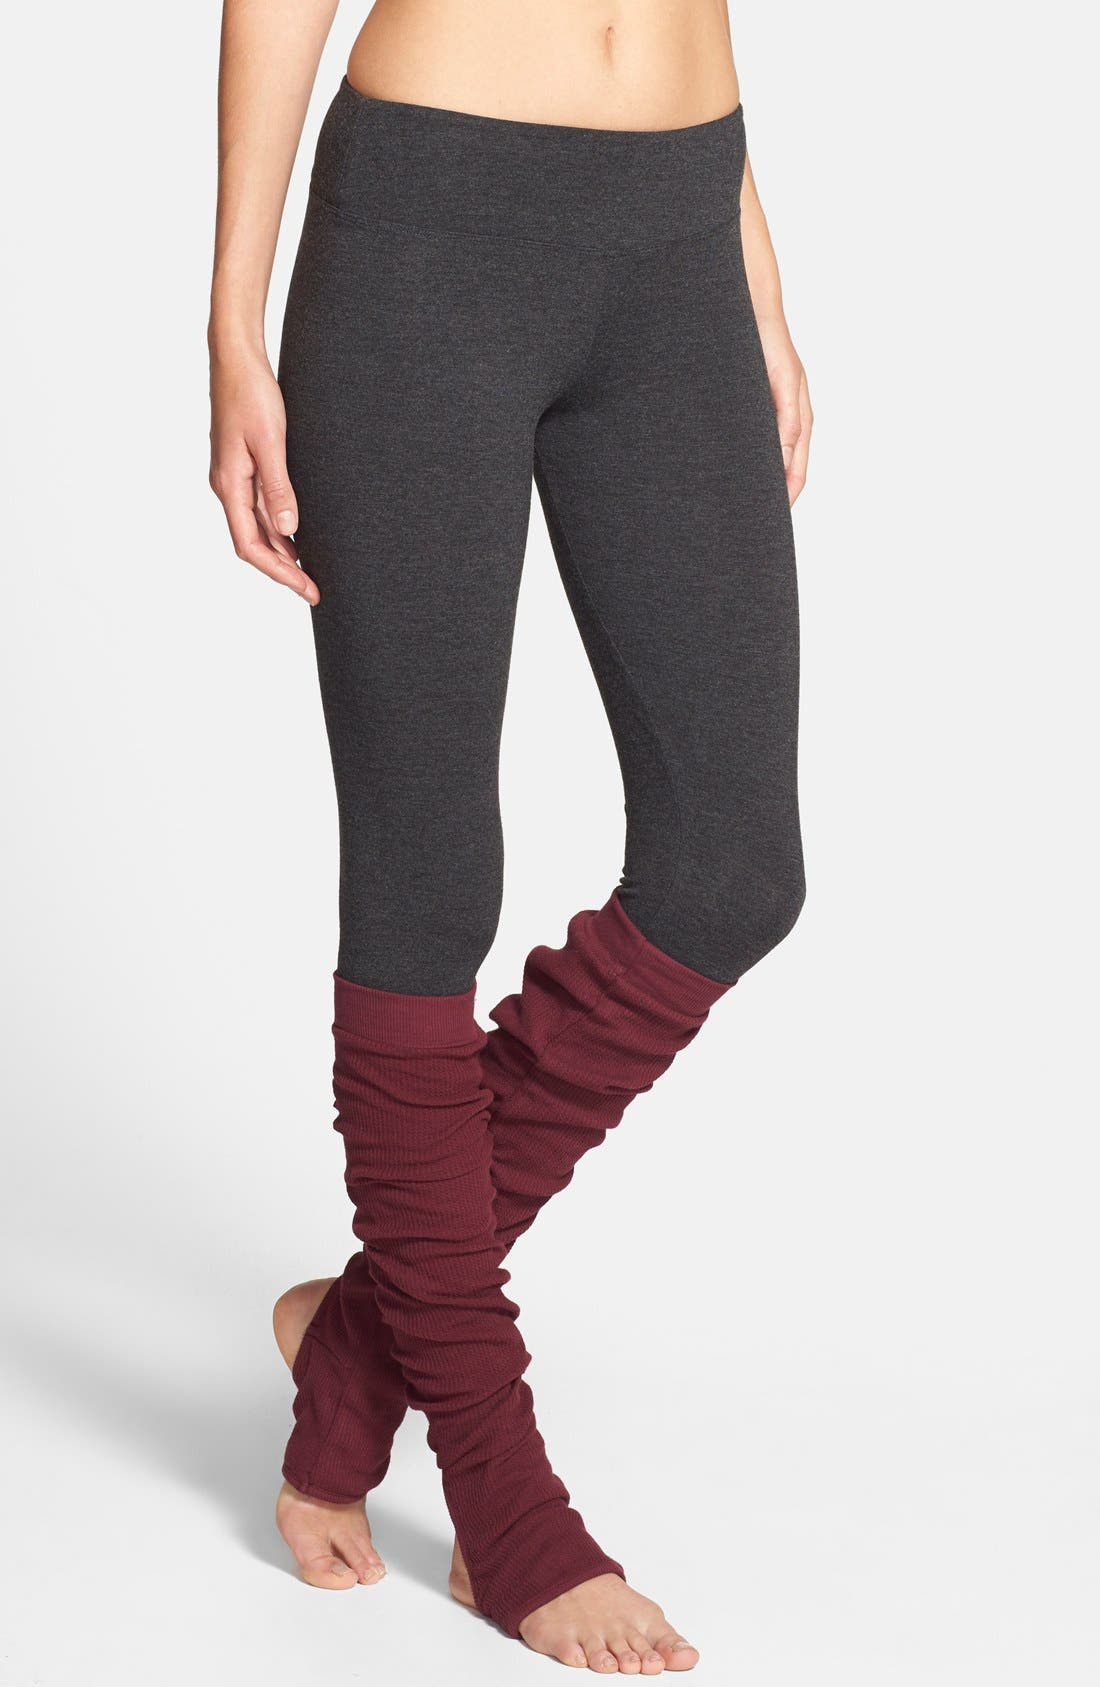 Solow Leg Warmer Leggings